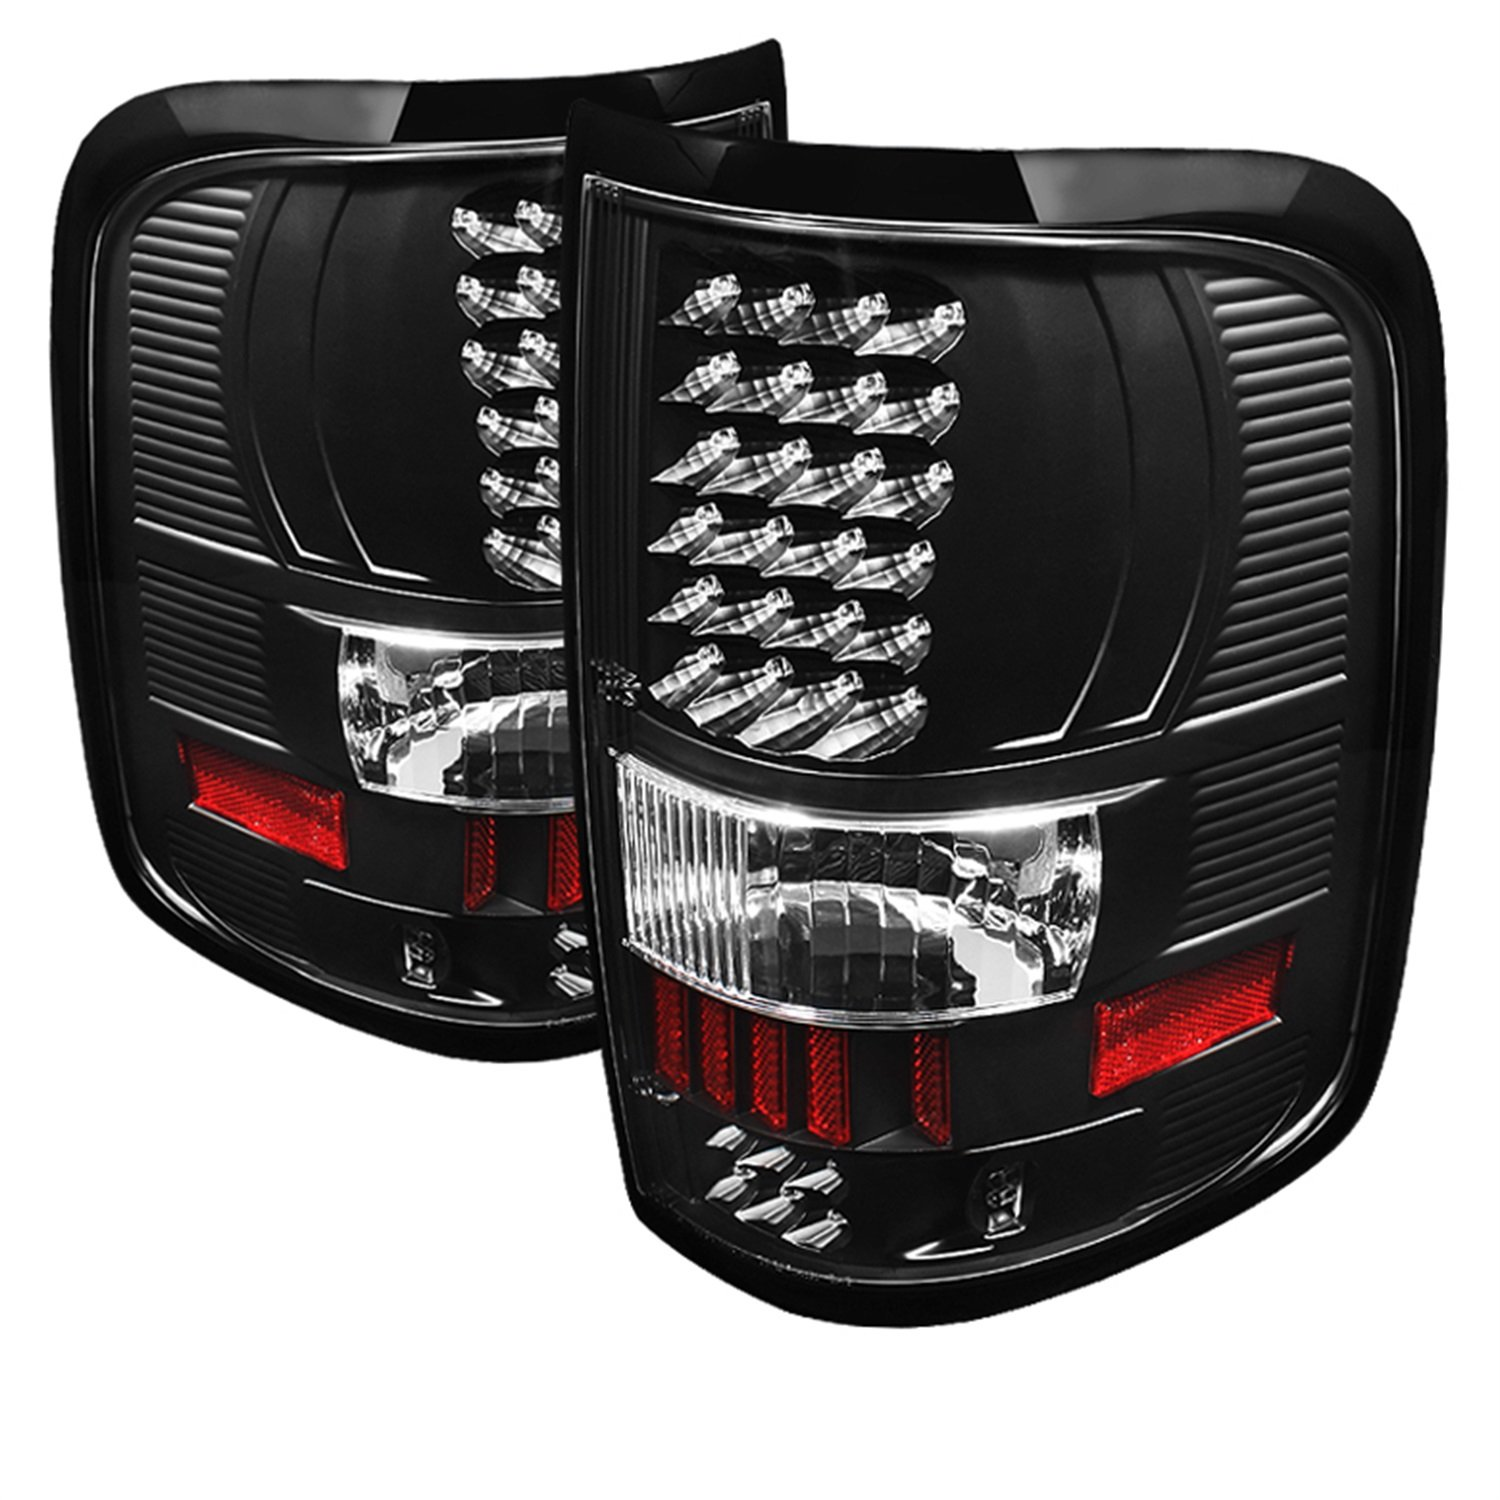 71FpZPH4KpL._SL1500_ amazon com spyder auto alt on ff15004 led bk ford f150 styleside 08 f150 tail light wiring diagram at creativeand.co